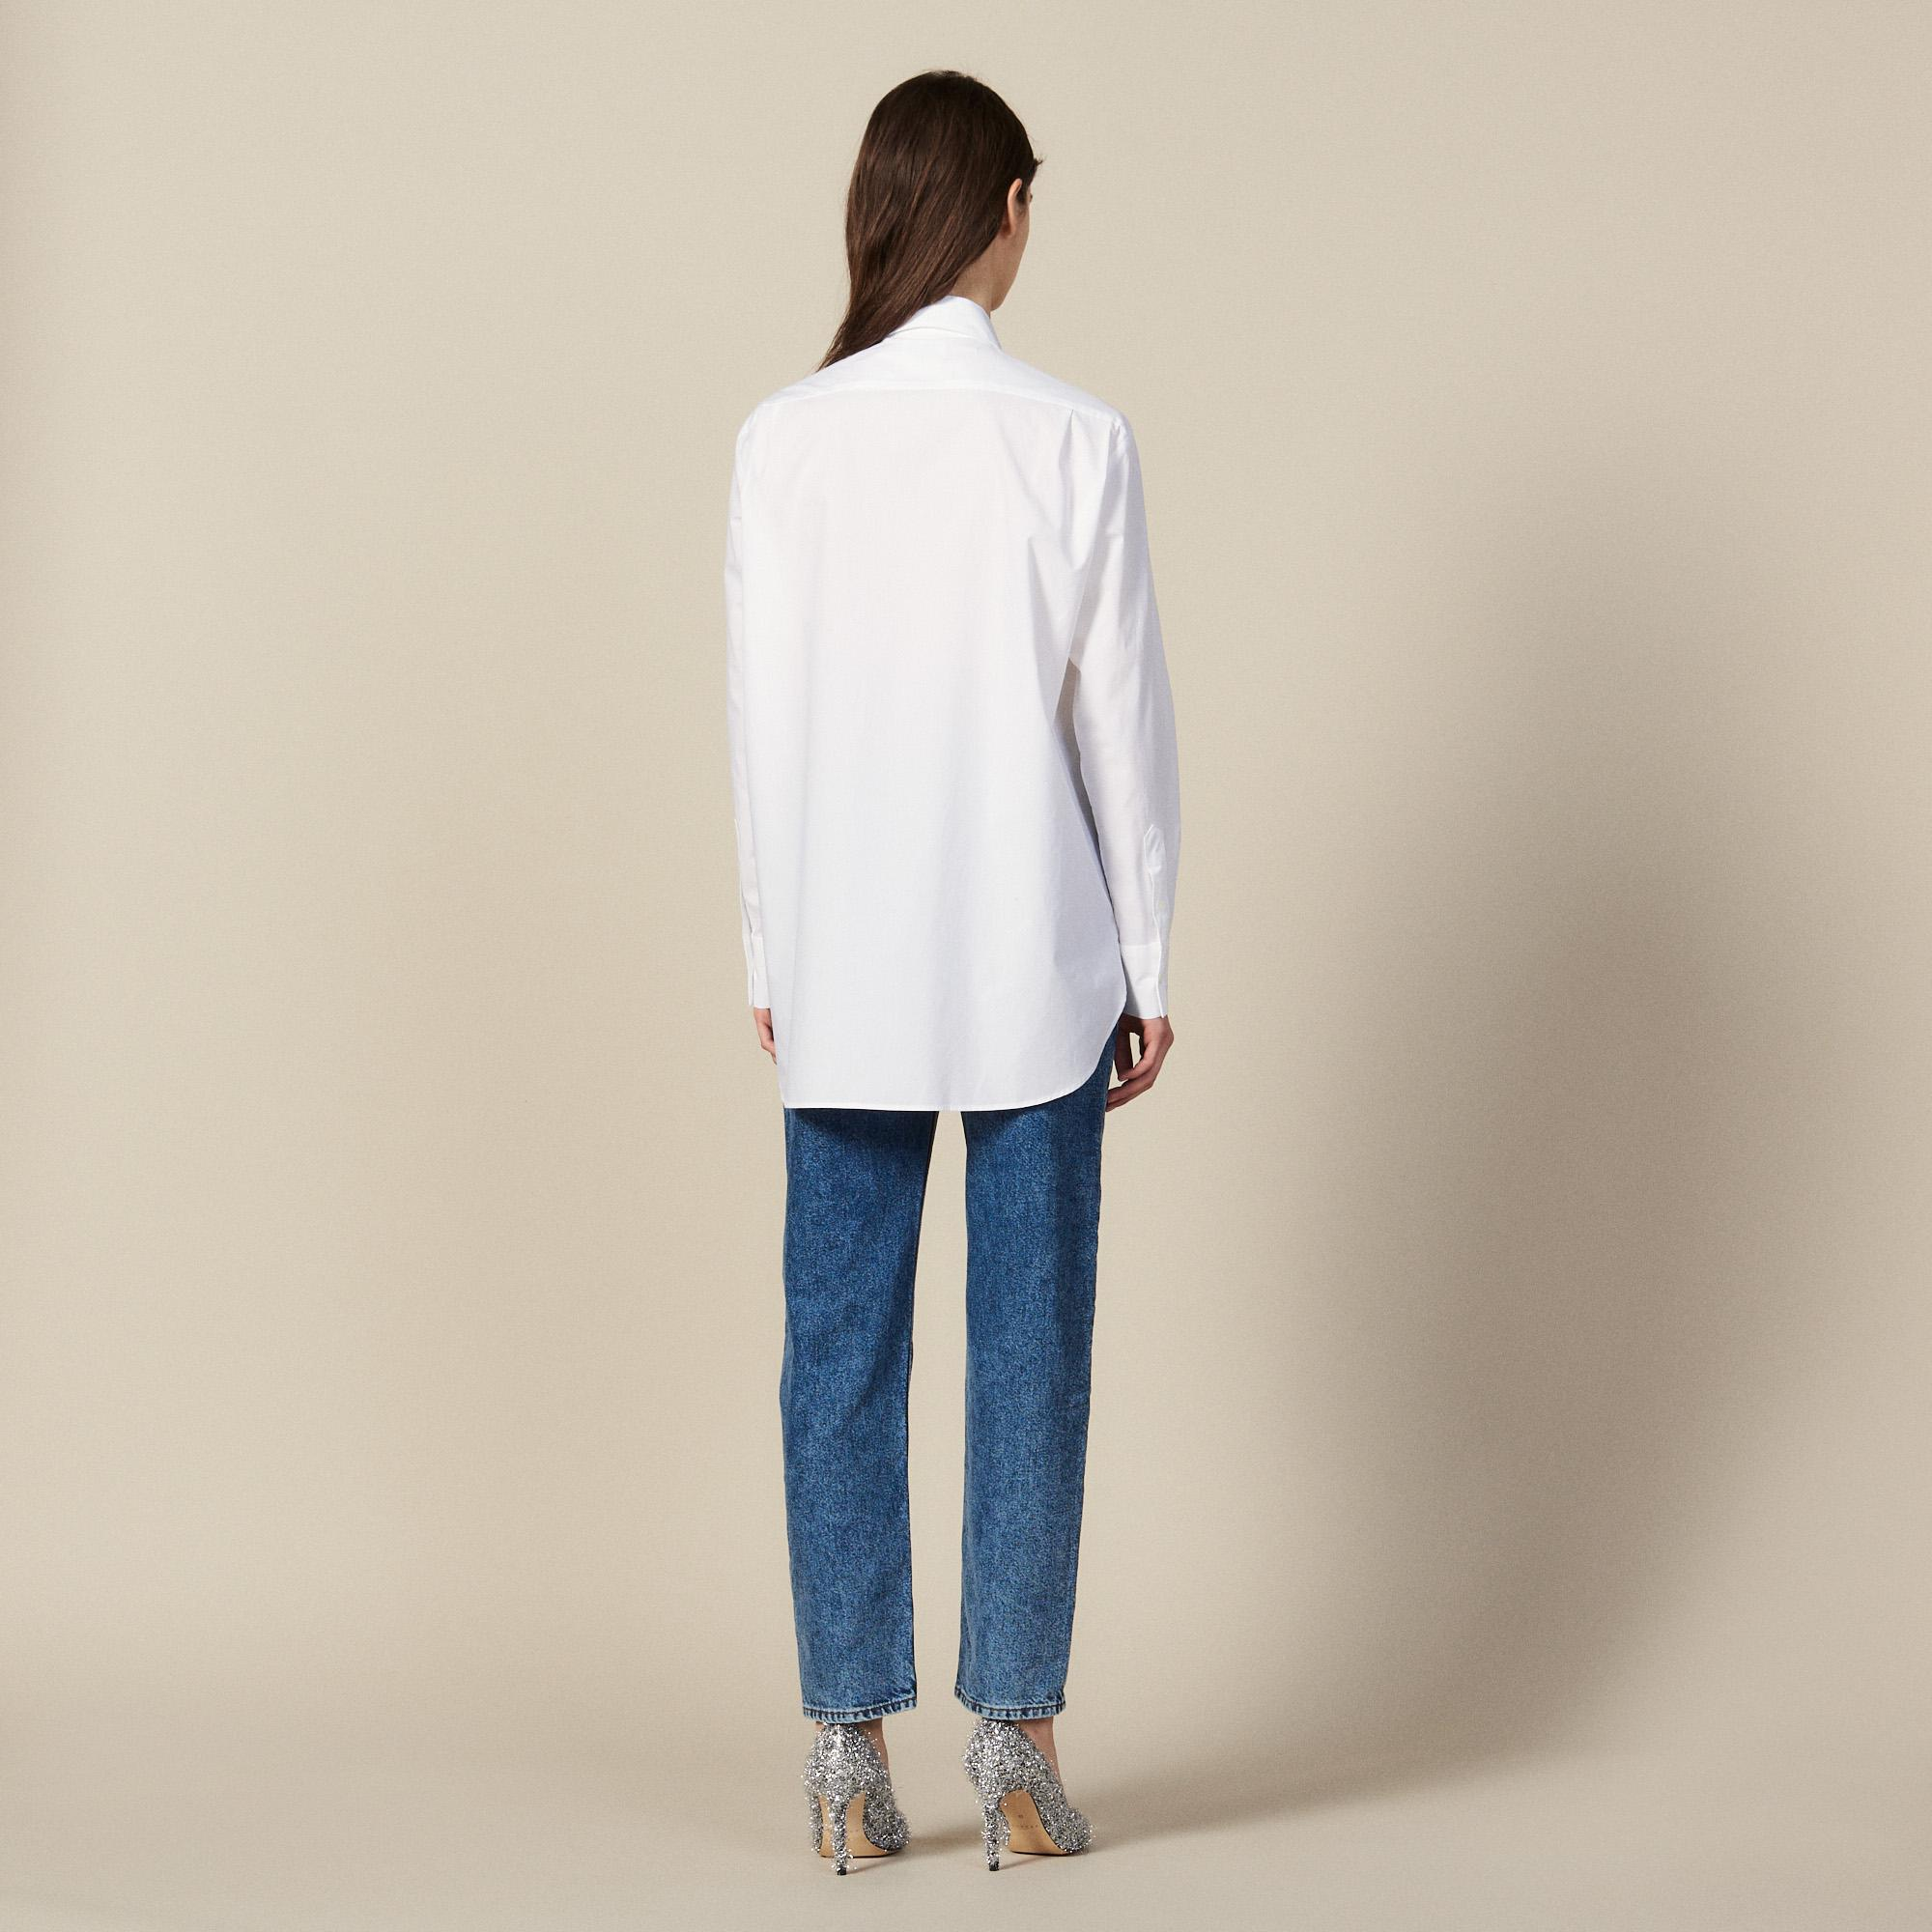 Asymmetric shirt trimmed with studs